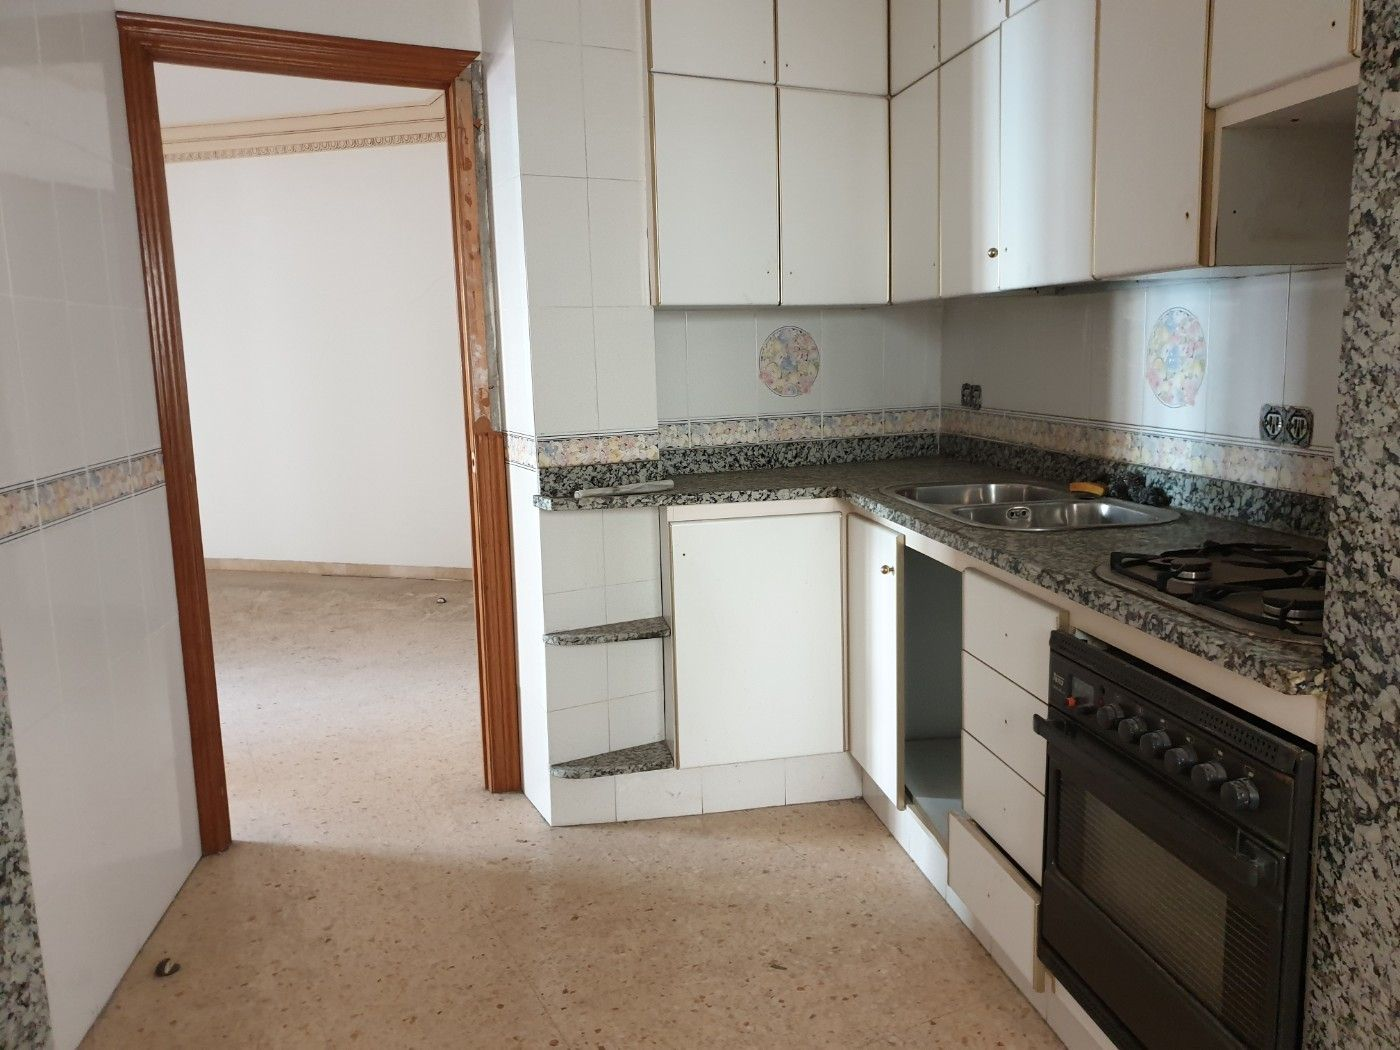 Flat in Carrer sant maurici, 42. Oportunidad